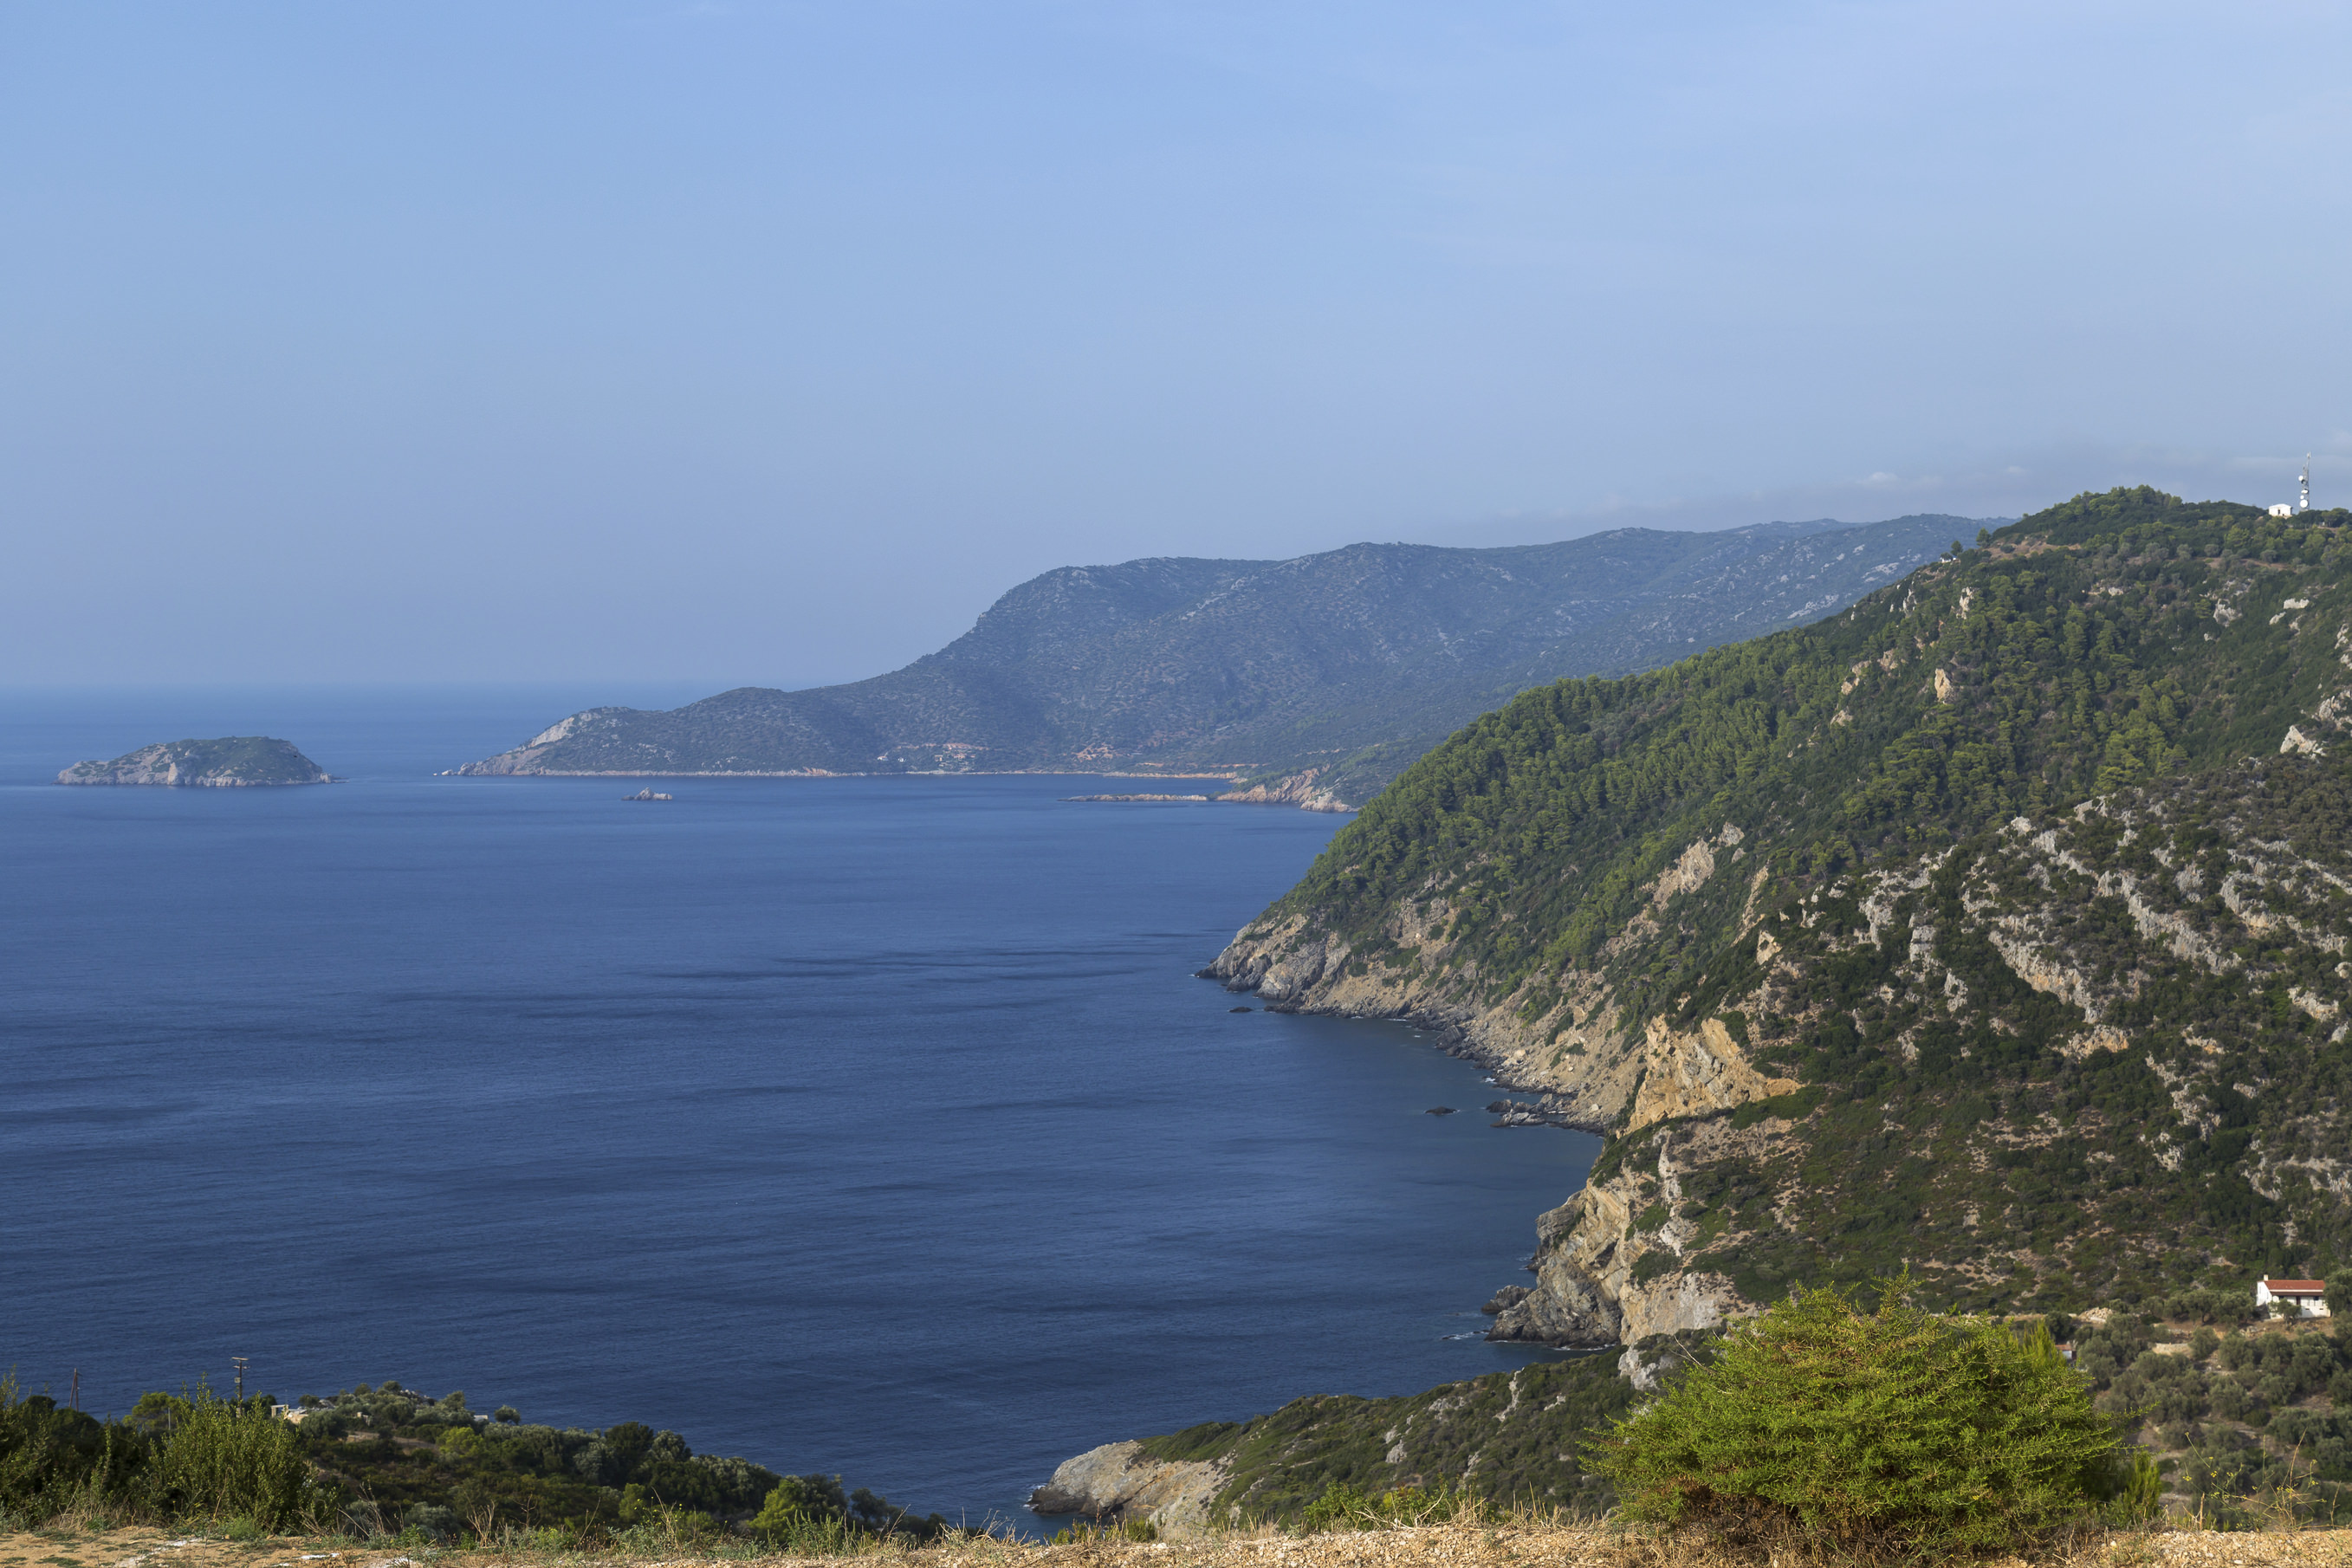 View from the old village (Chora) of Alonissos island, Northern Sporades, Aegean sea, Greece, Europe